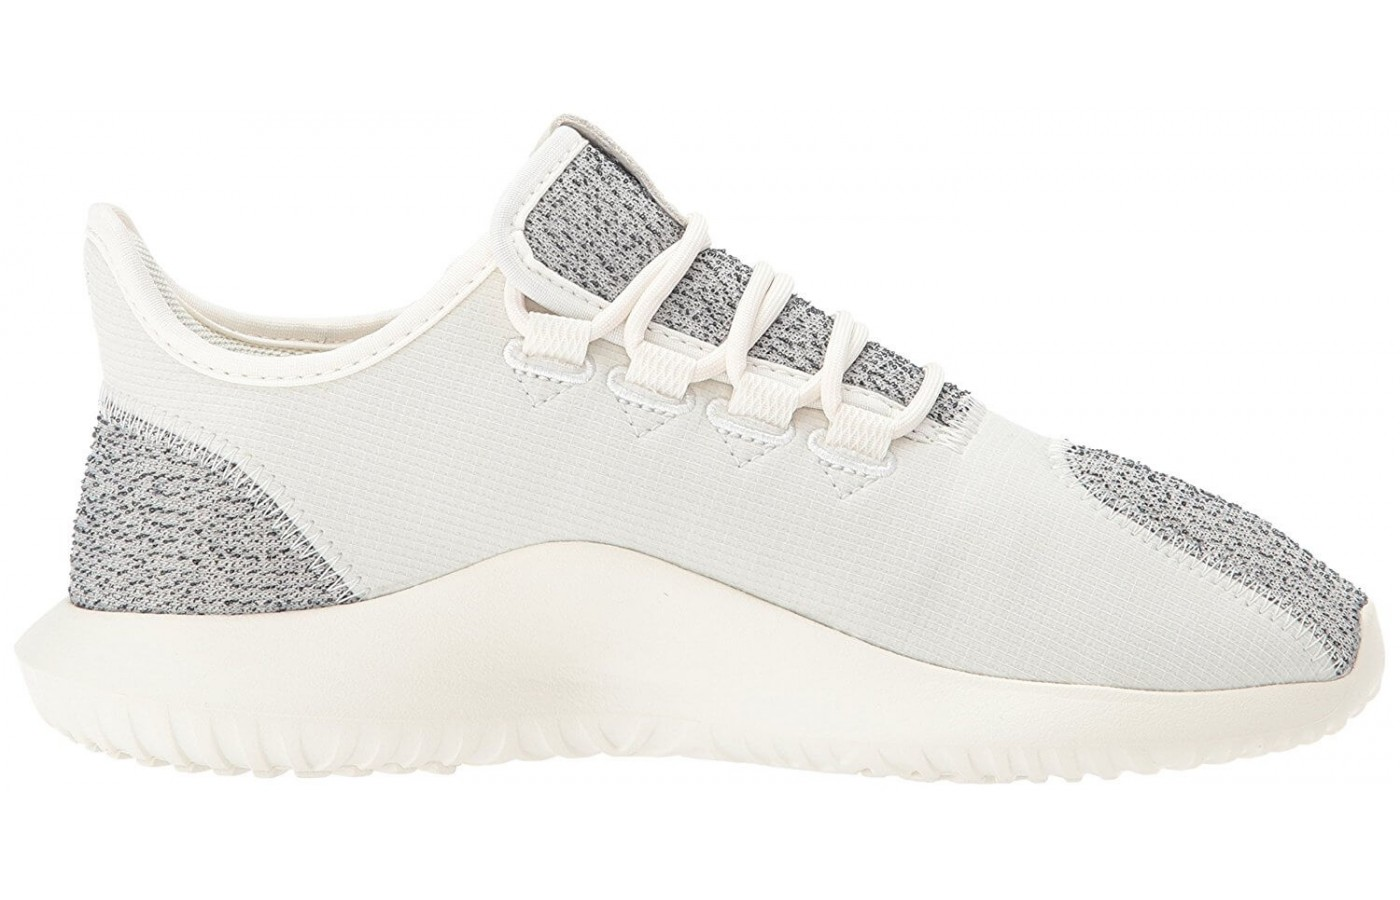 the best attitude 65955 52ec1 ... The Adidas Tubular Shadow features a sock-like upper design ...